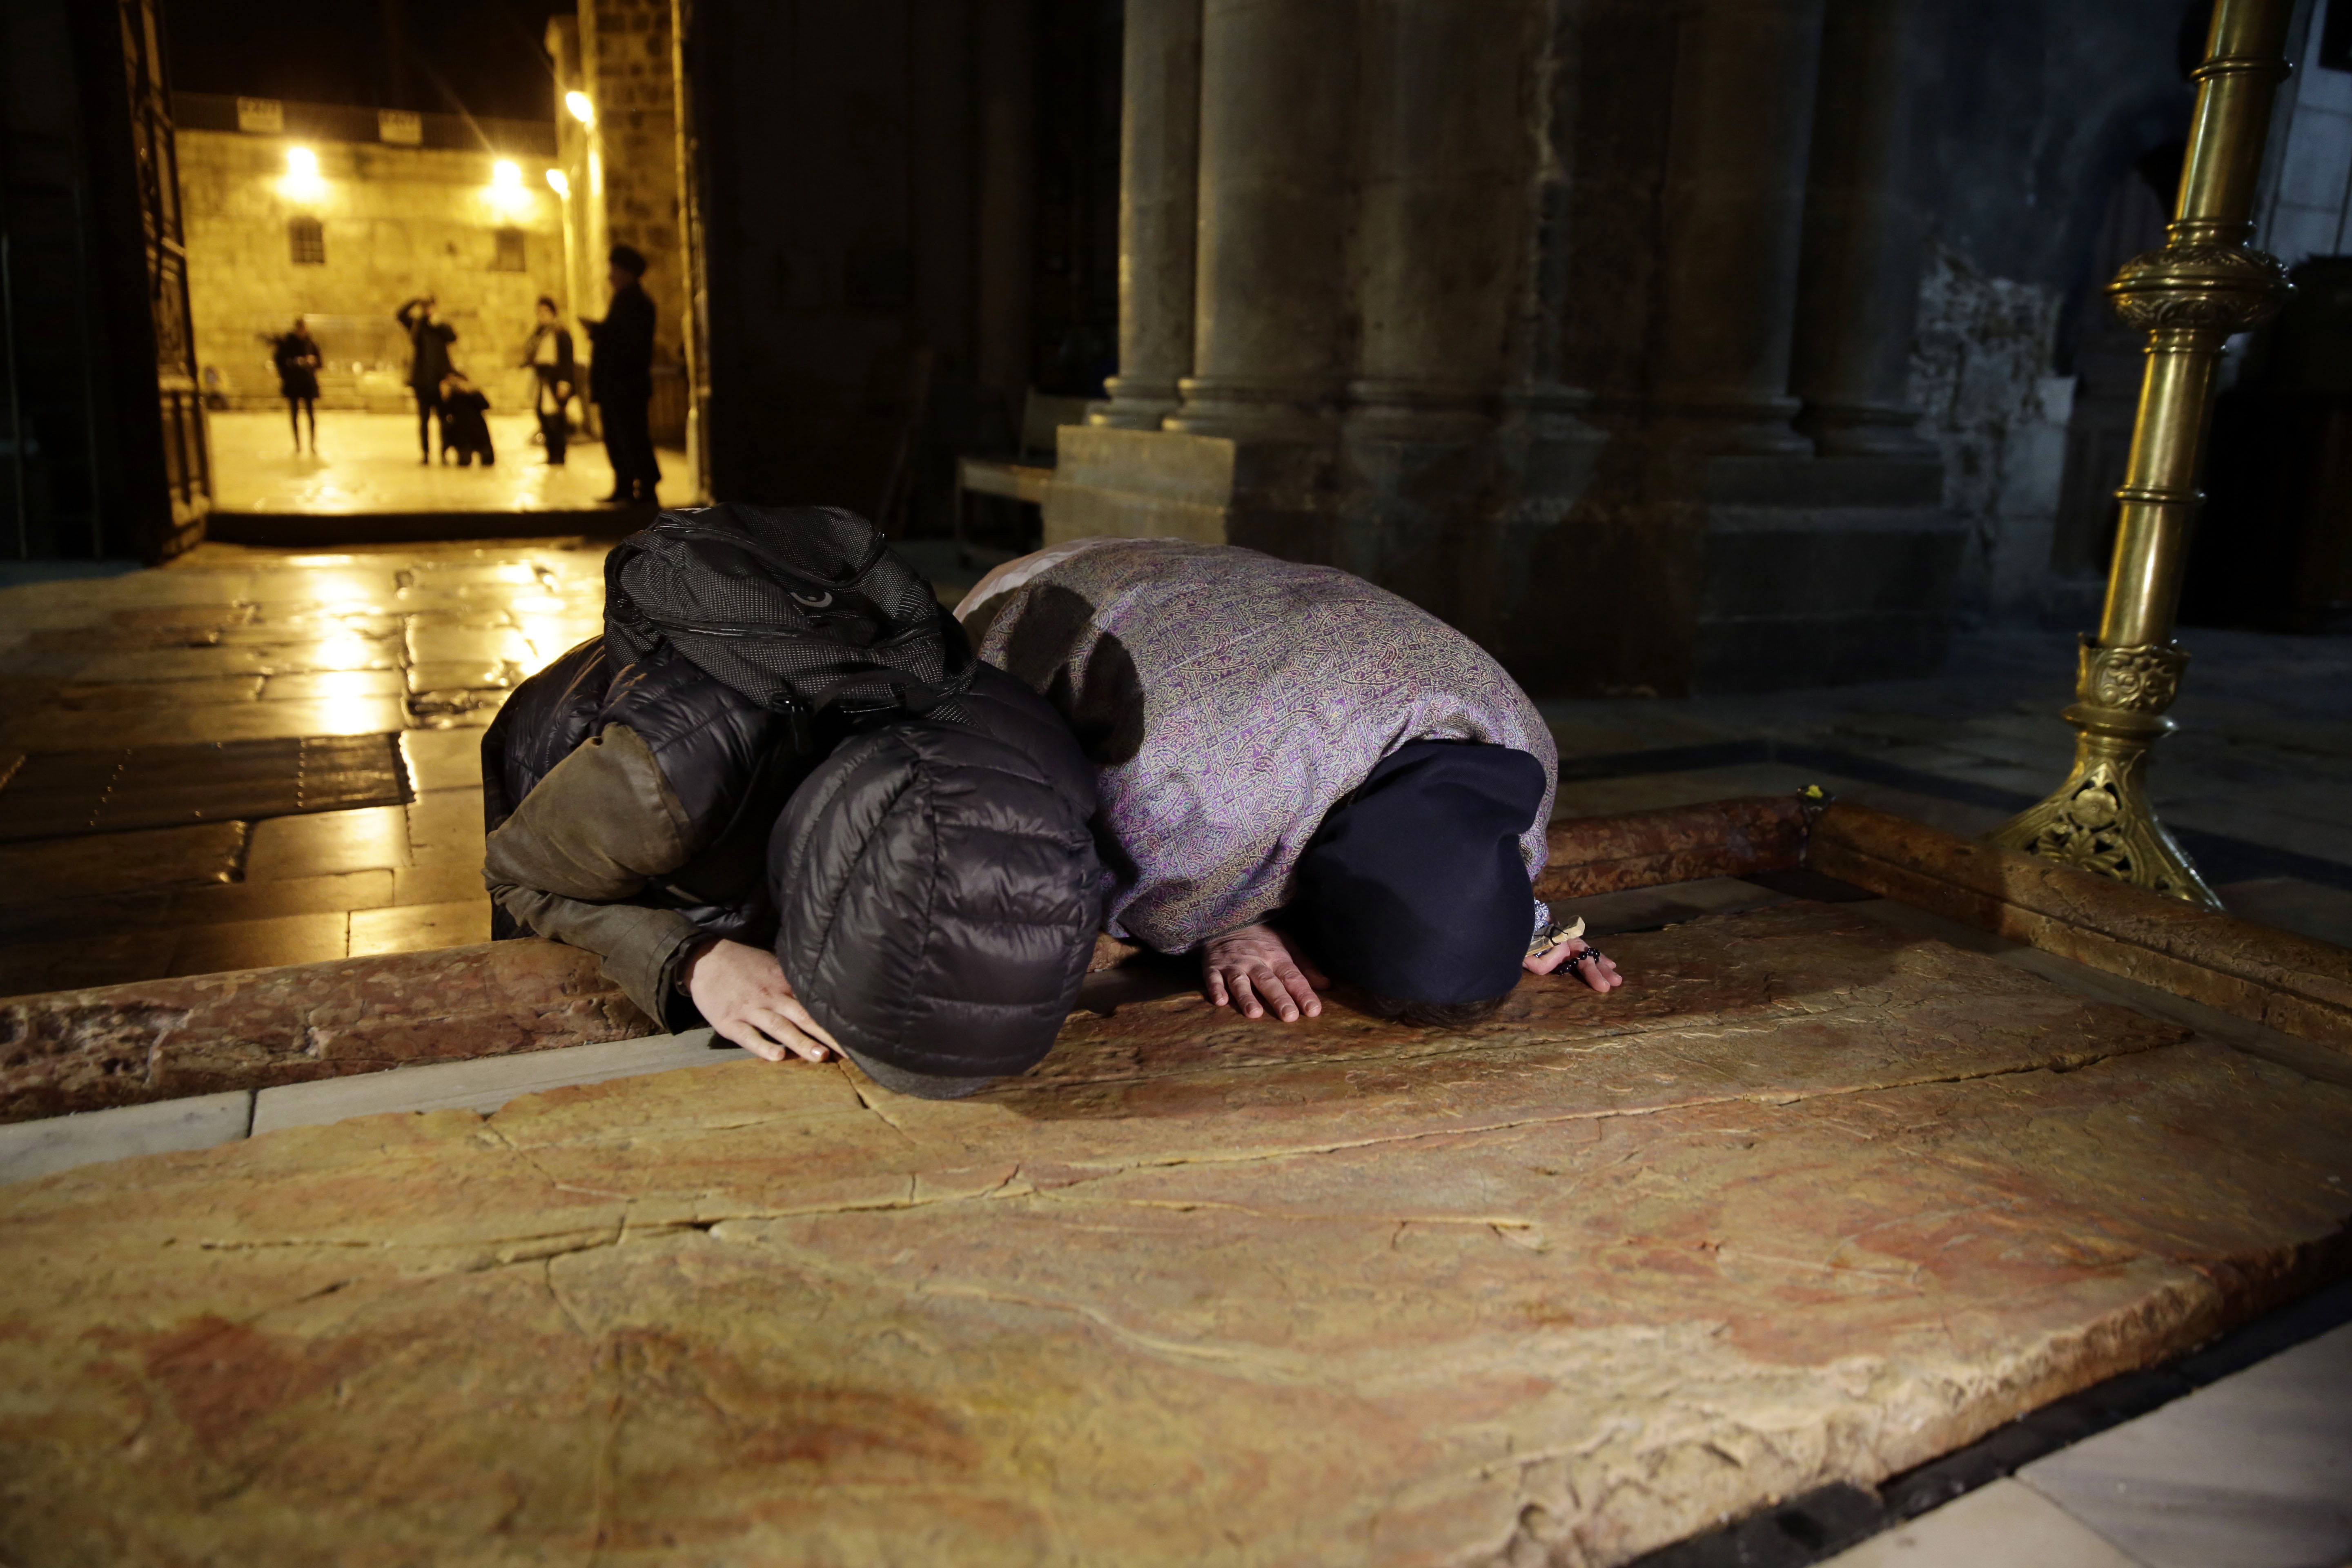 Visitors pray inside the Church of the Holy Sepulcher, traditionally believed by many Christians to be the site of the crucifixion and burial of Jesus Christ, in Jerusalem, Feb. 28, 2018.